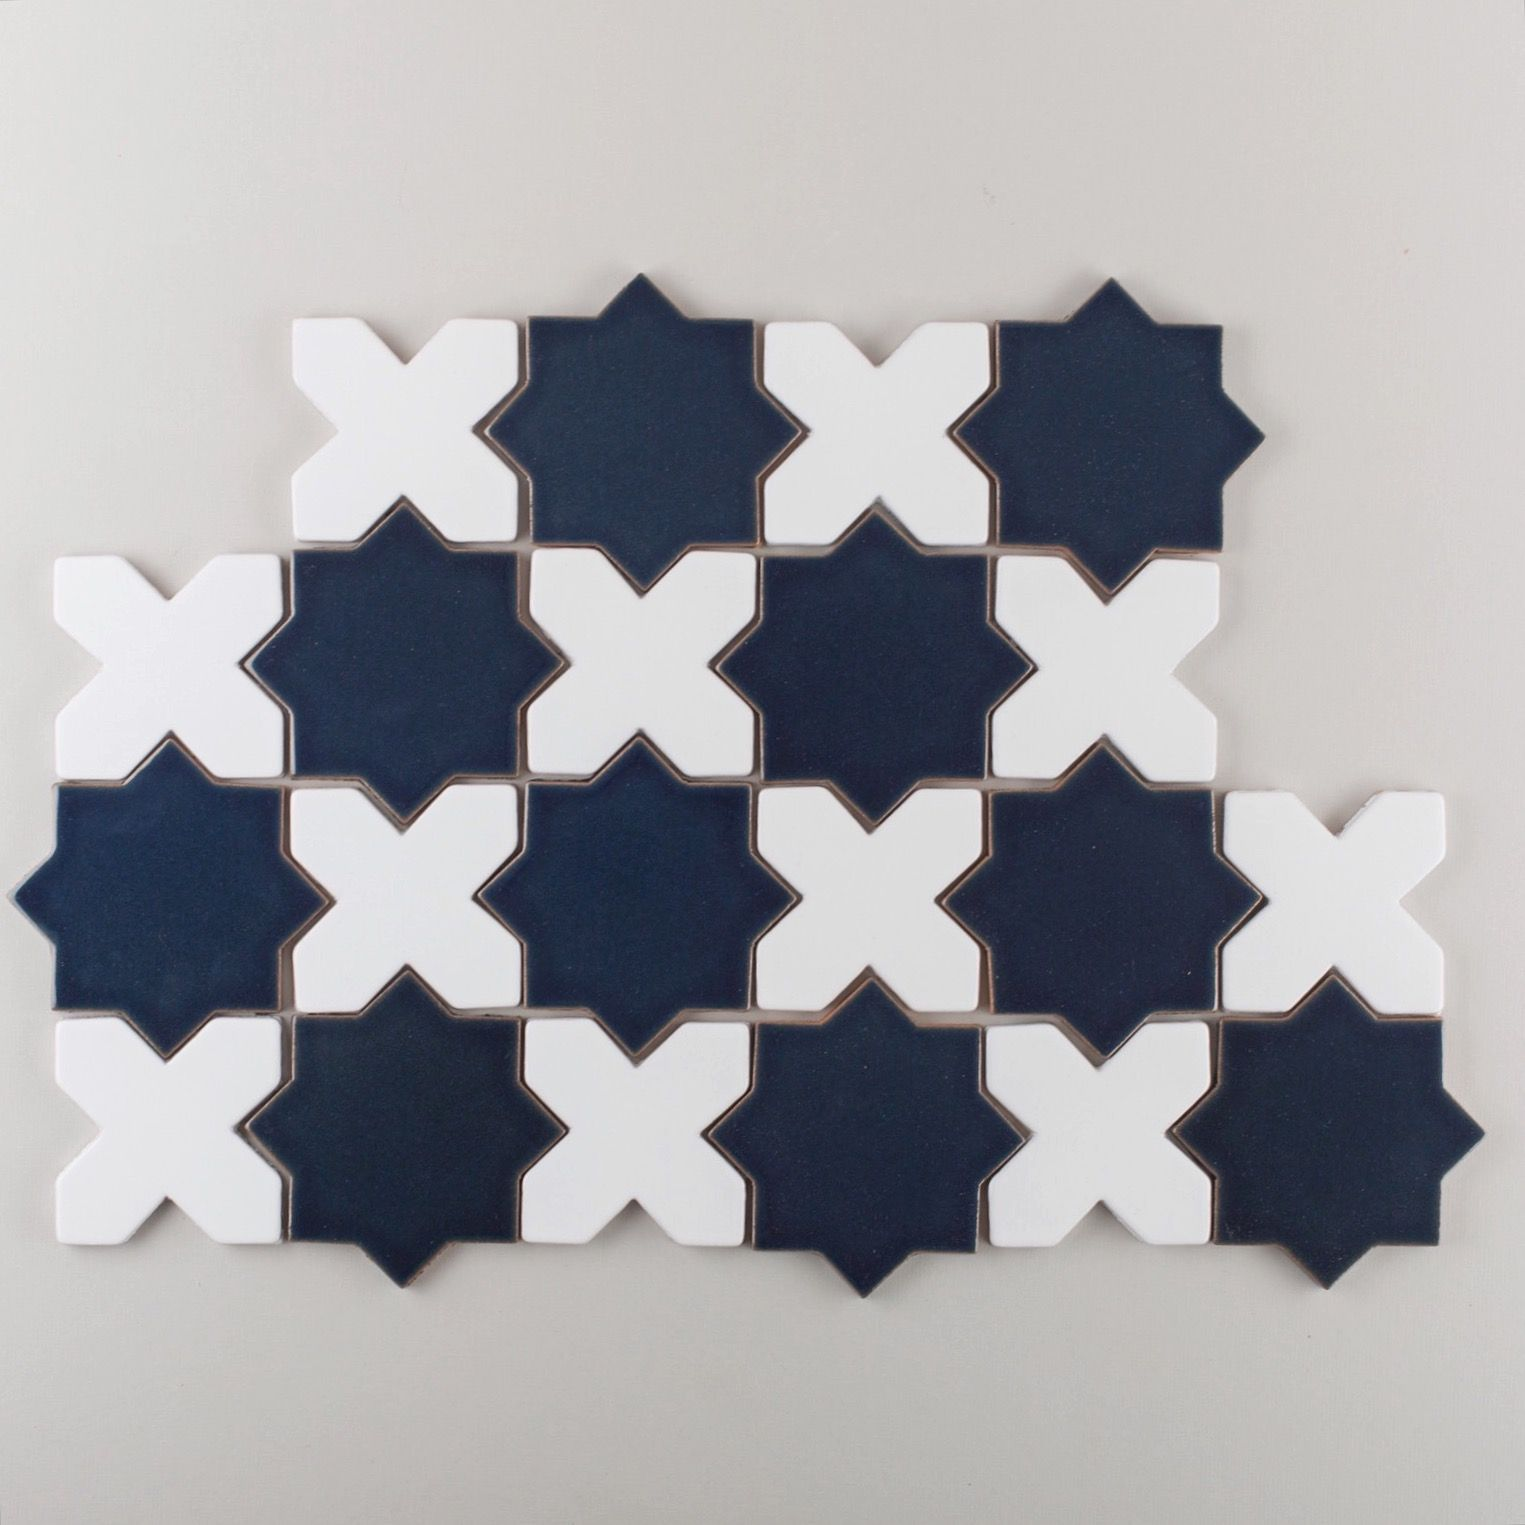 A classic tile pattern that works beautifully for both wall and ...